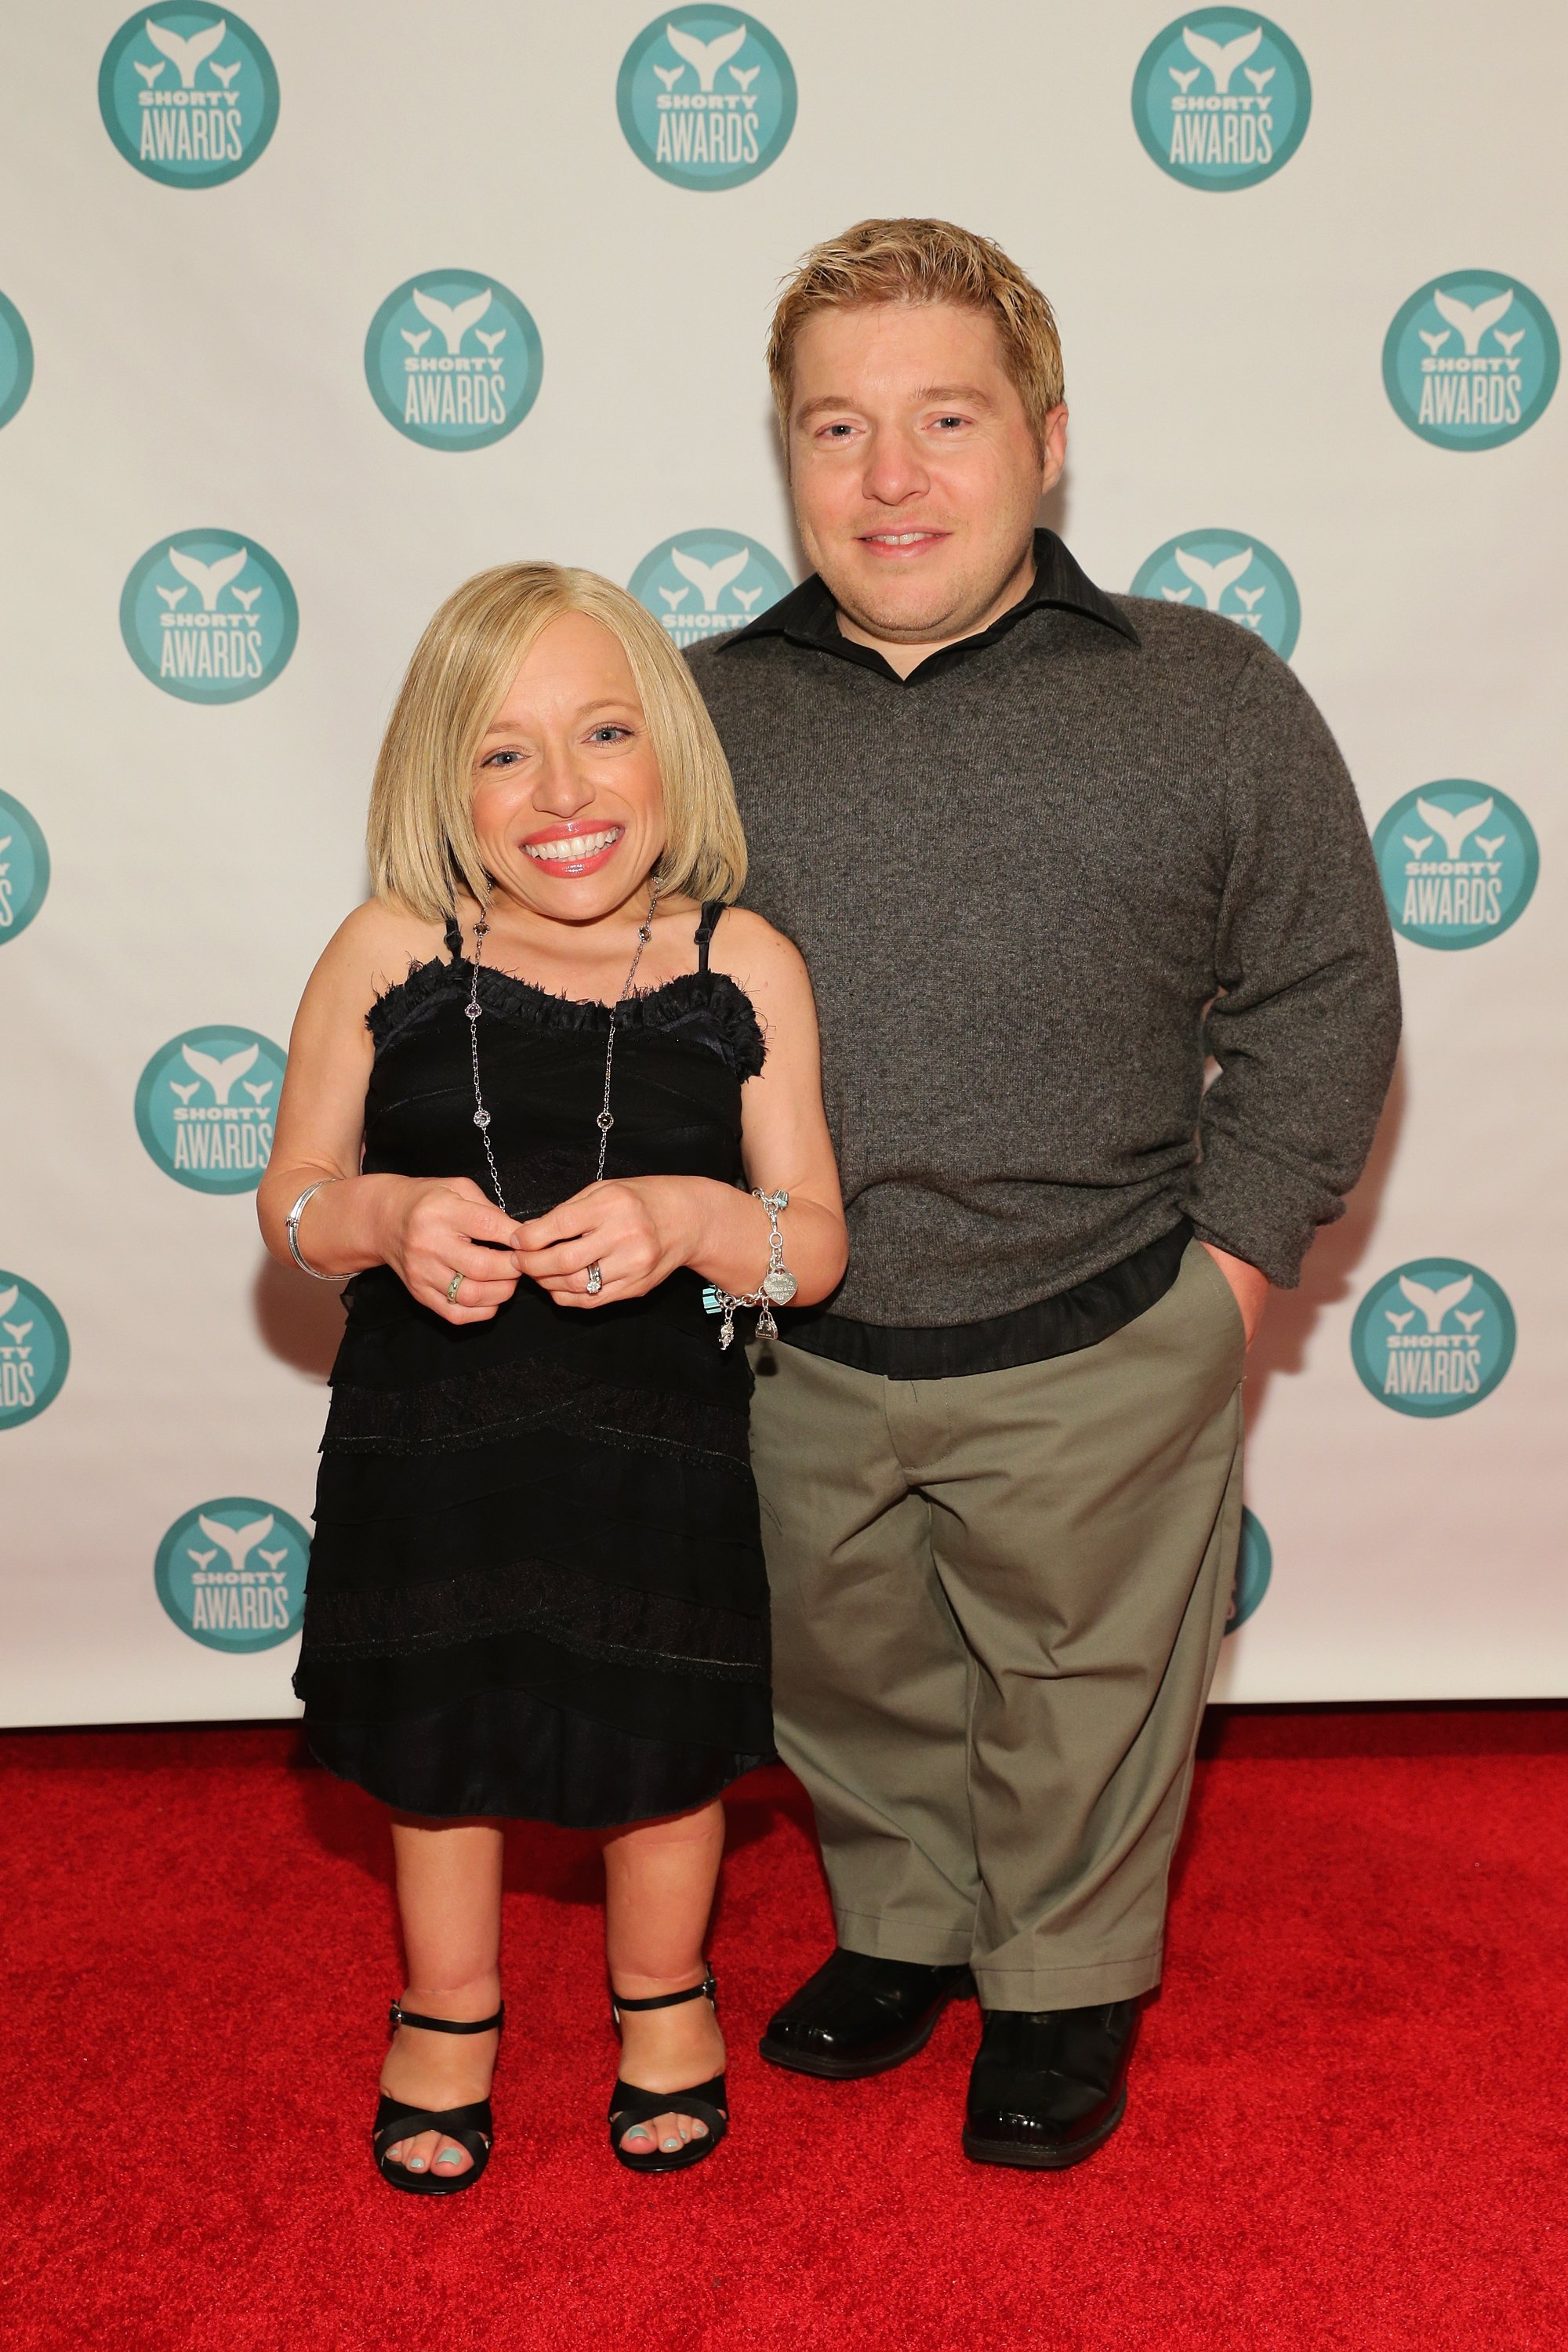 Doctor Jennifer Arnold and Bill Klein attend the 6th Annual Shorty Awards in New York City on April 7, 2014 | Photo: Getty Images